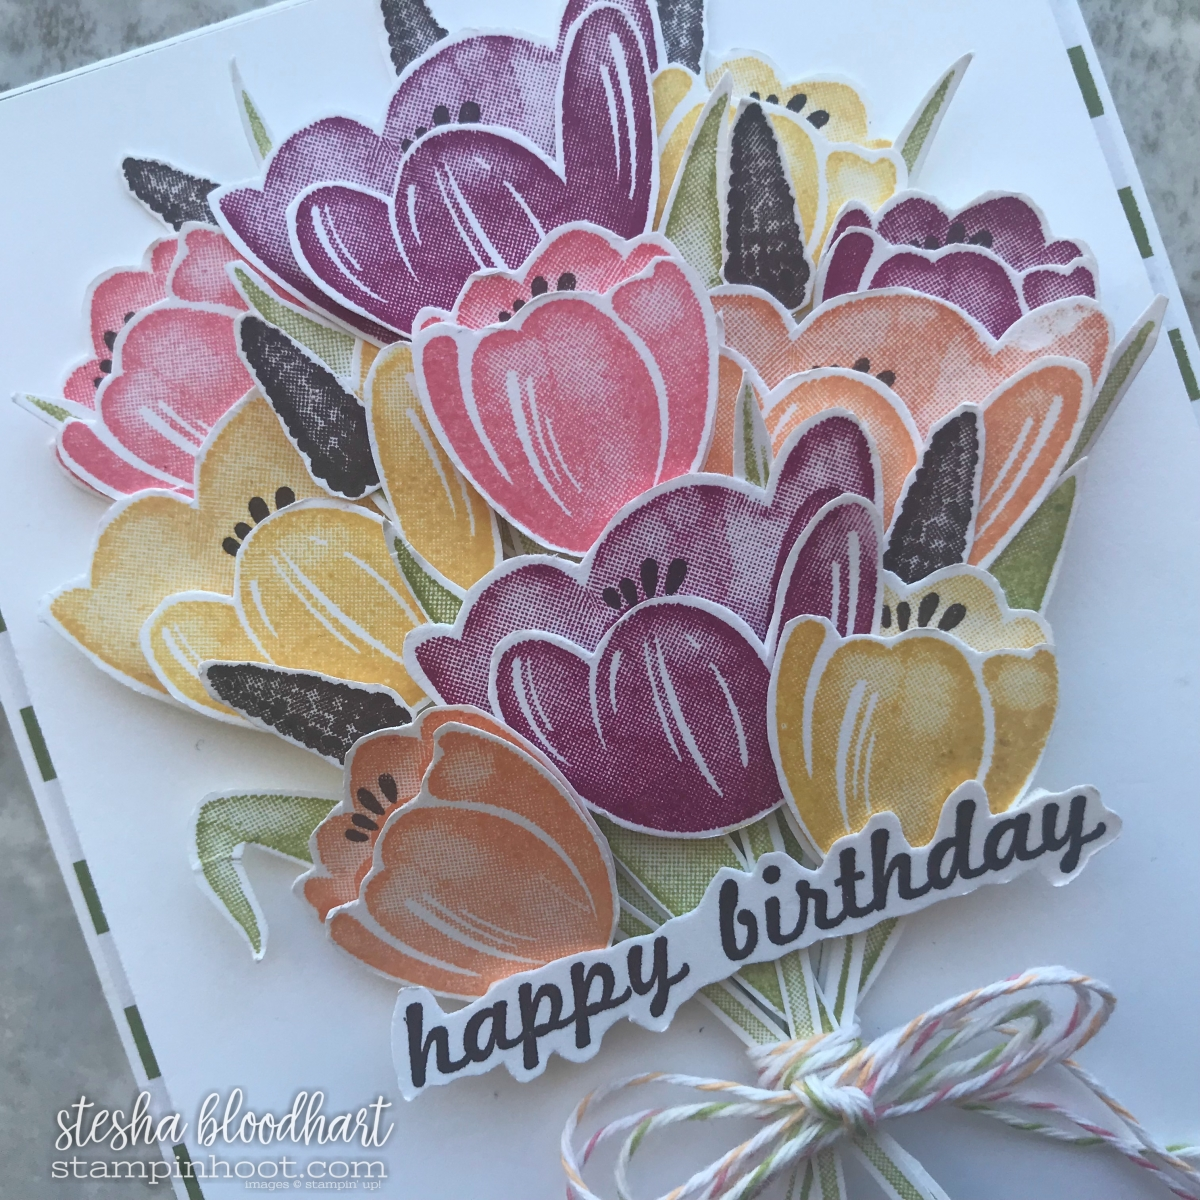 Tranquil Tulips Happy Birthday Card for TGIFC151 Inspiration Challenge Card Created by Stesha Bloodhart, Stampin' Hoot! #steshabloodhart #stampinhoot